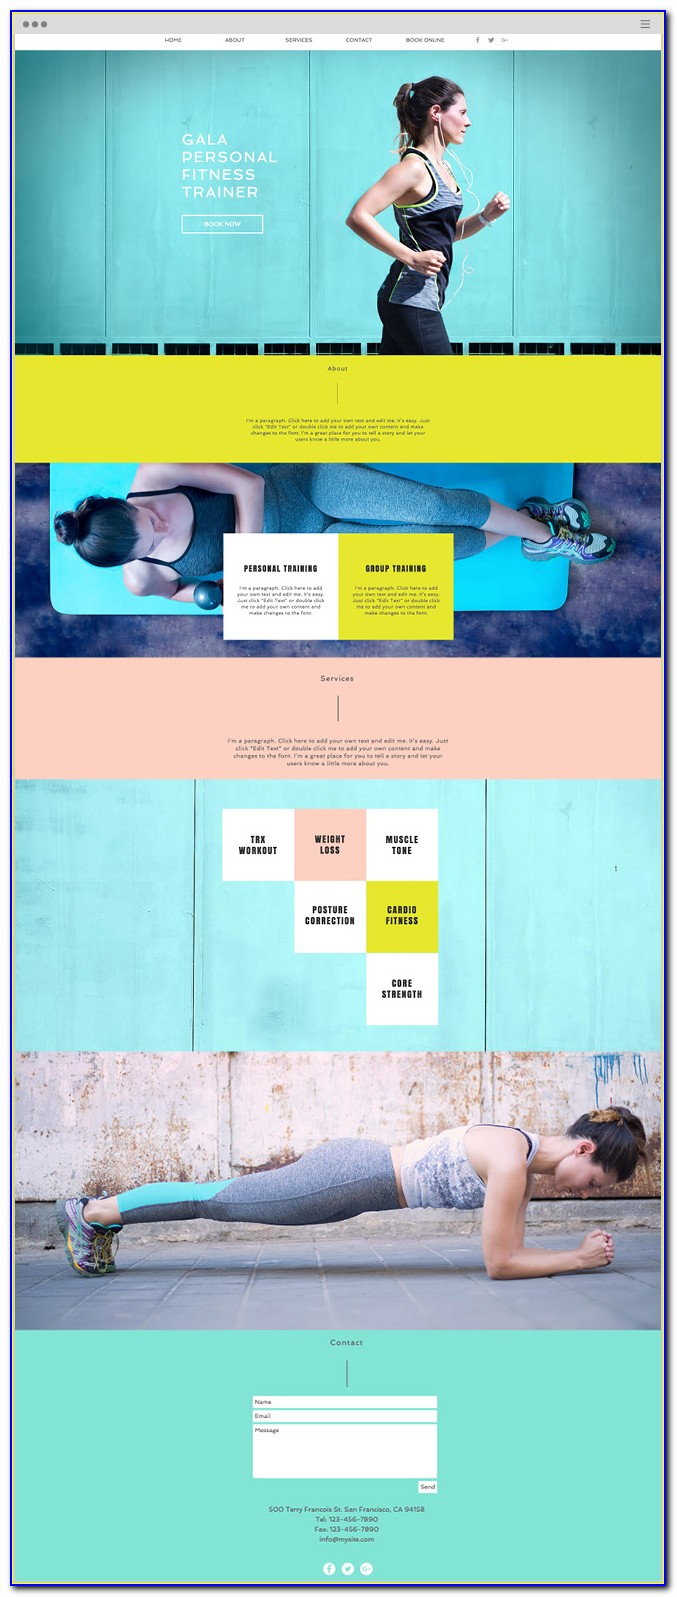 Personal Trainer Websites Templates